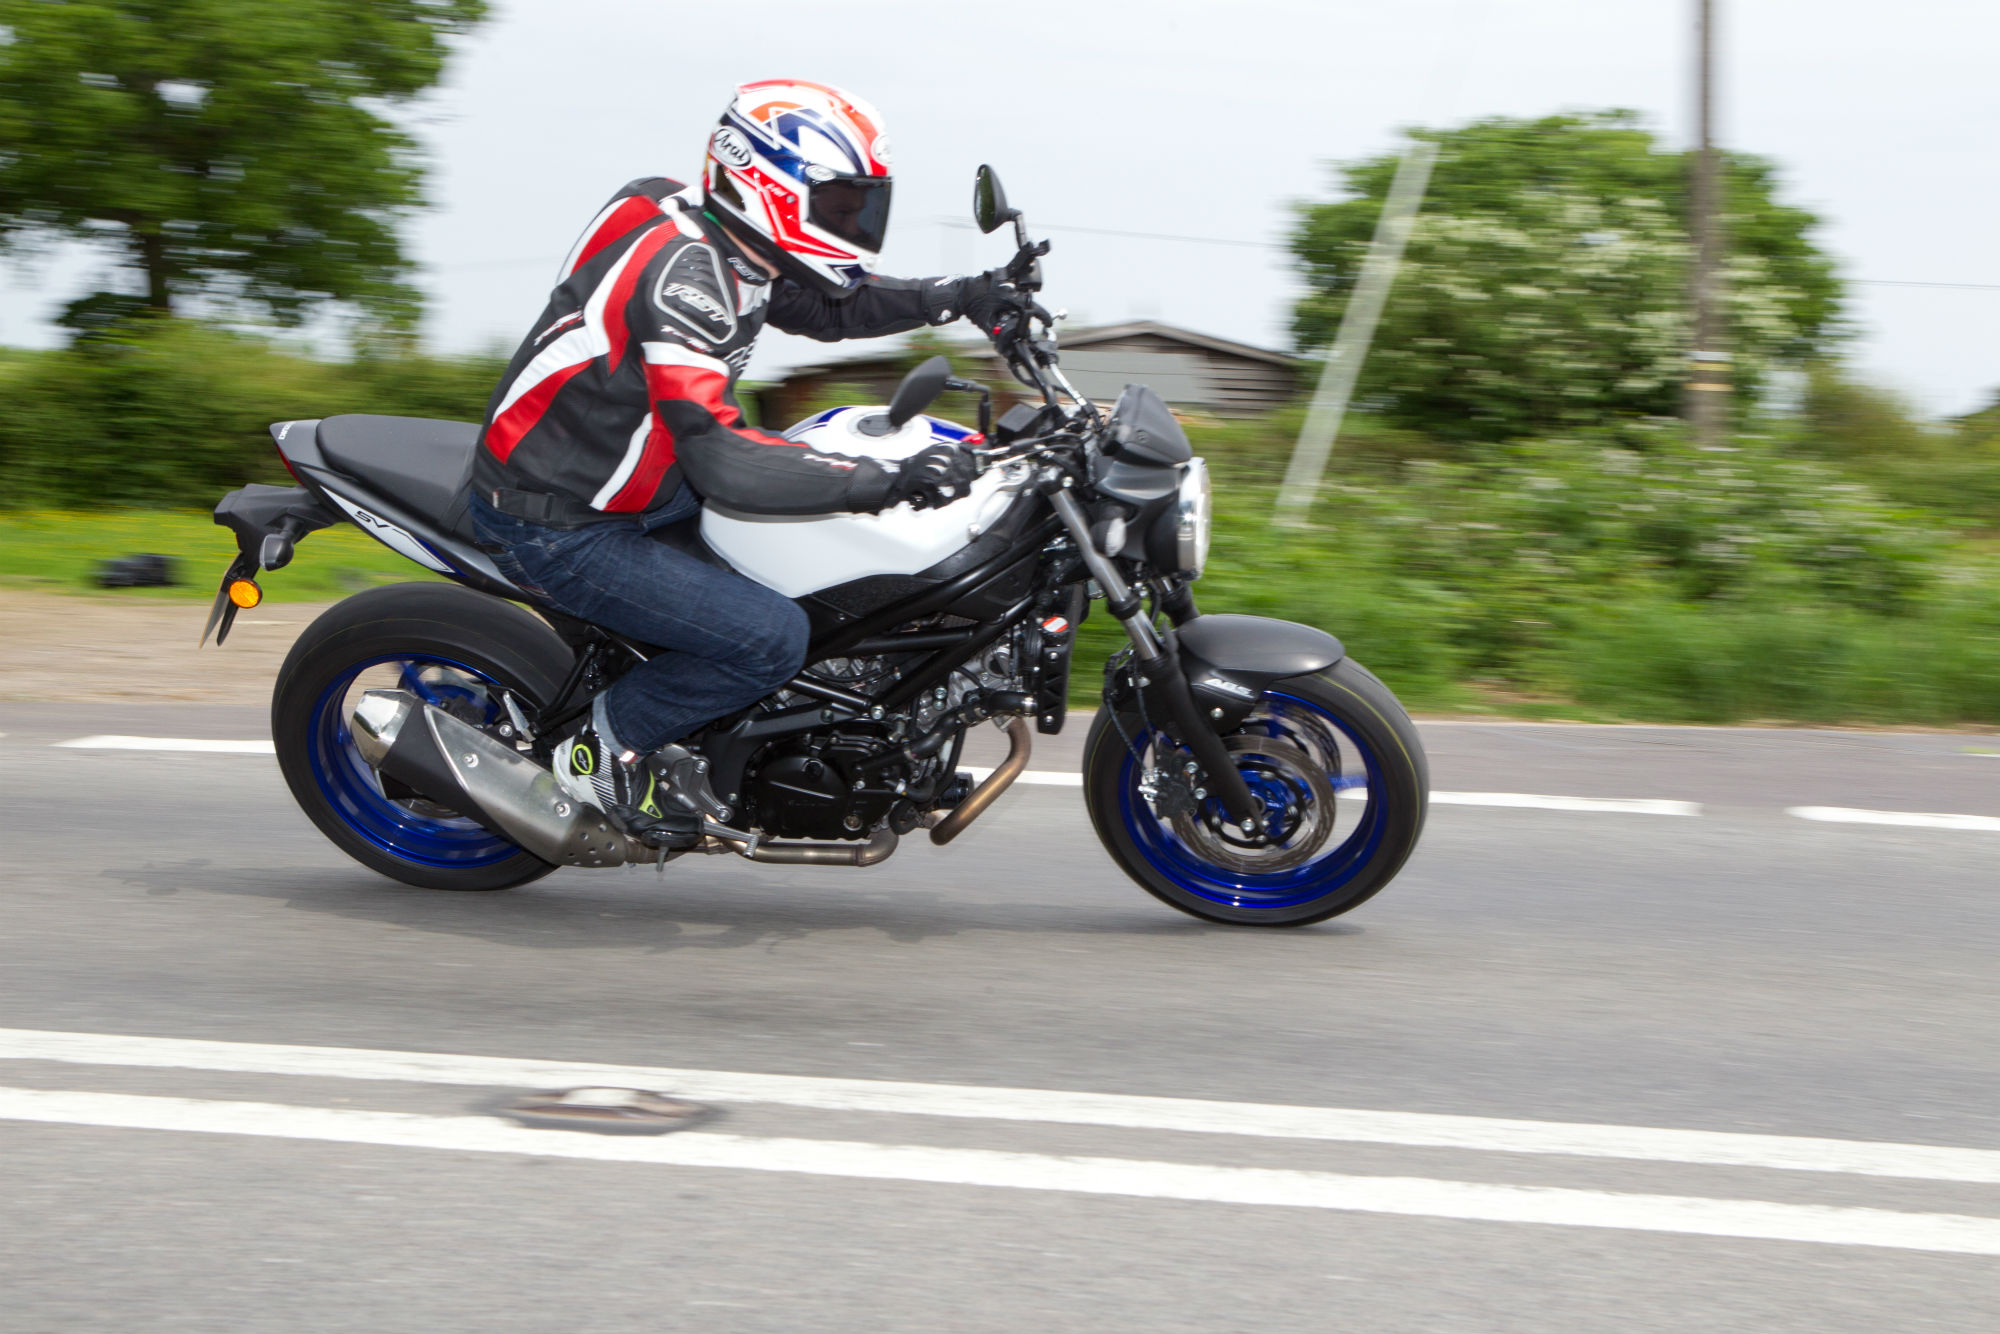 IVE Got A 2013 SV650S Which I Own And Ive This Brand New 2016 Naked SV650 As Long Term Test Bike